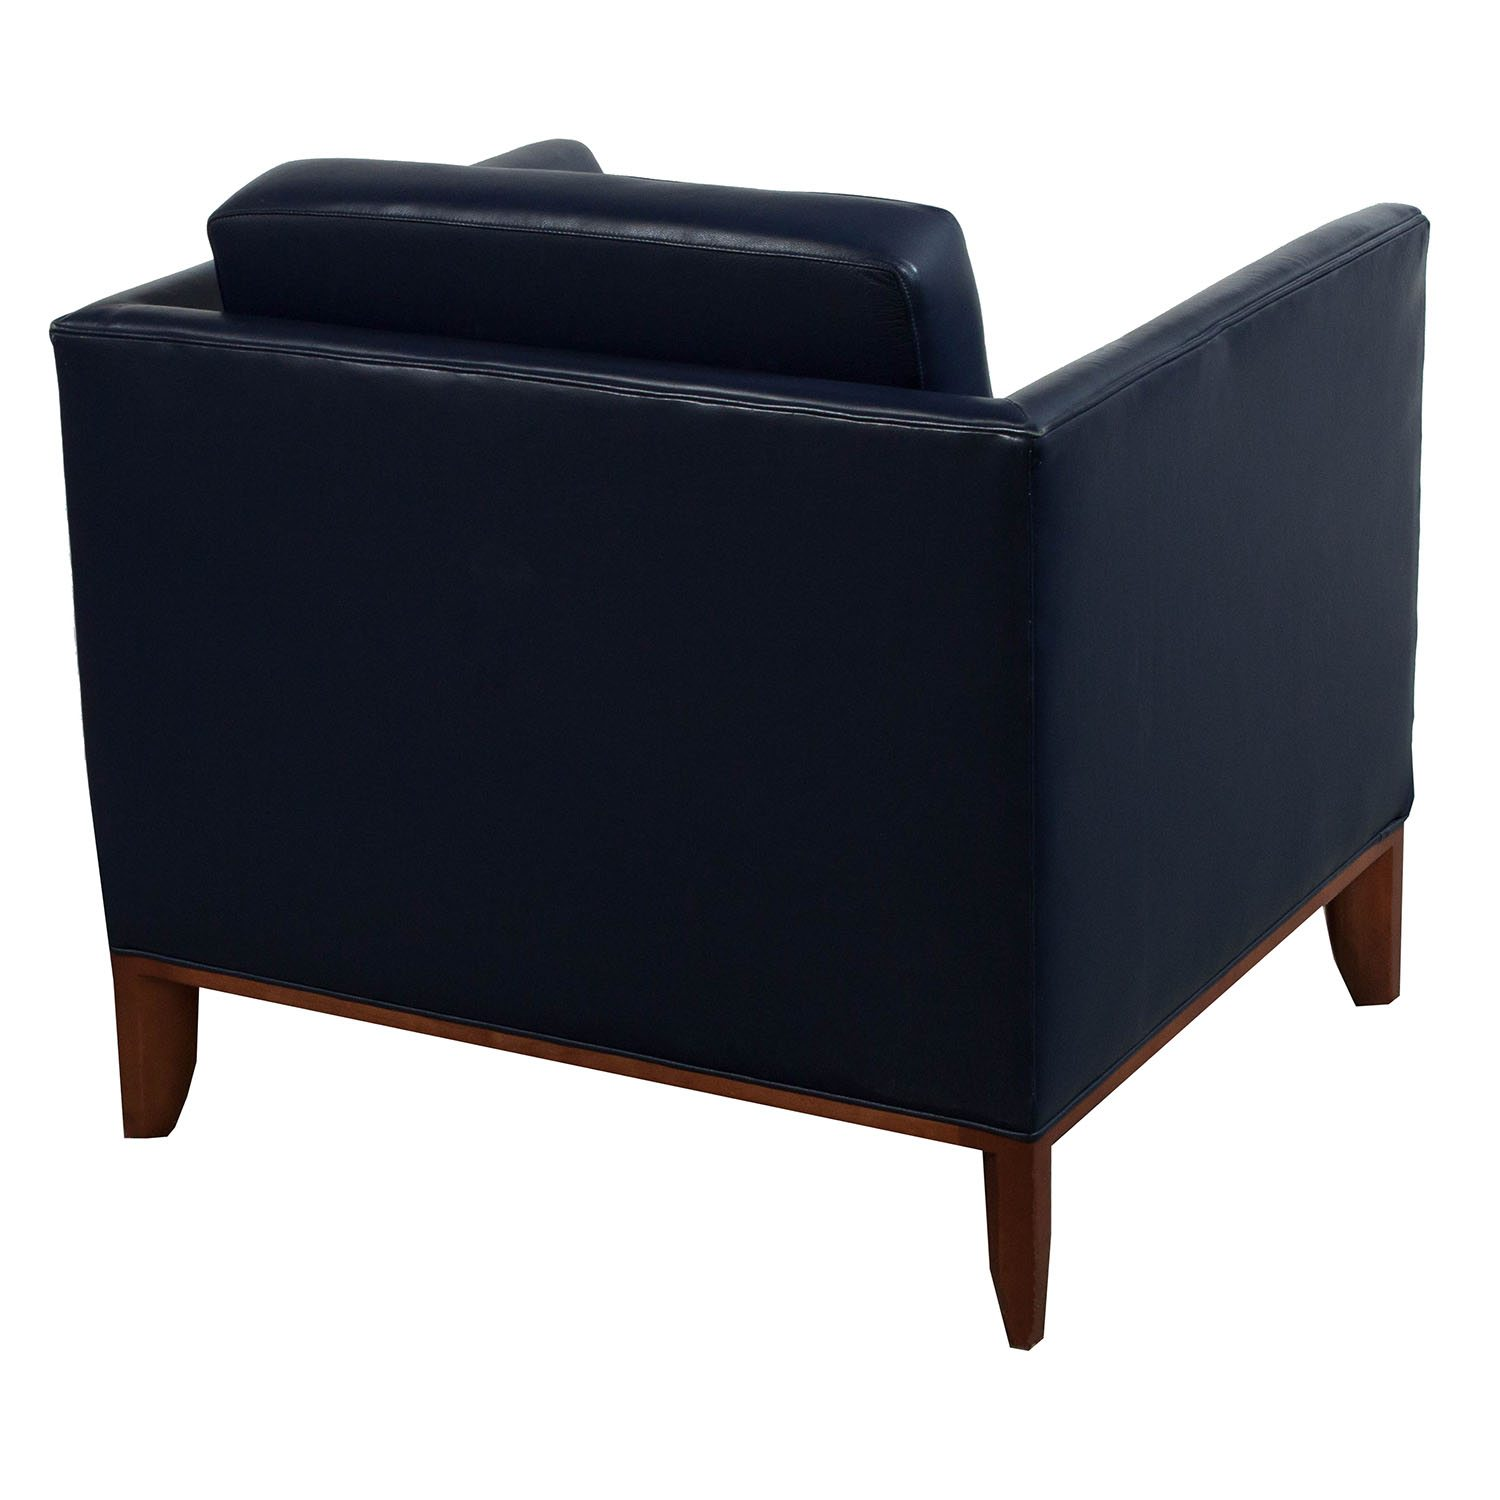 Bernhardt Used Leather Reception Chair, Blue